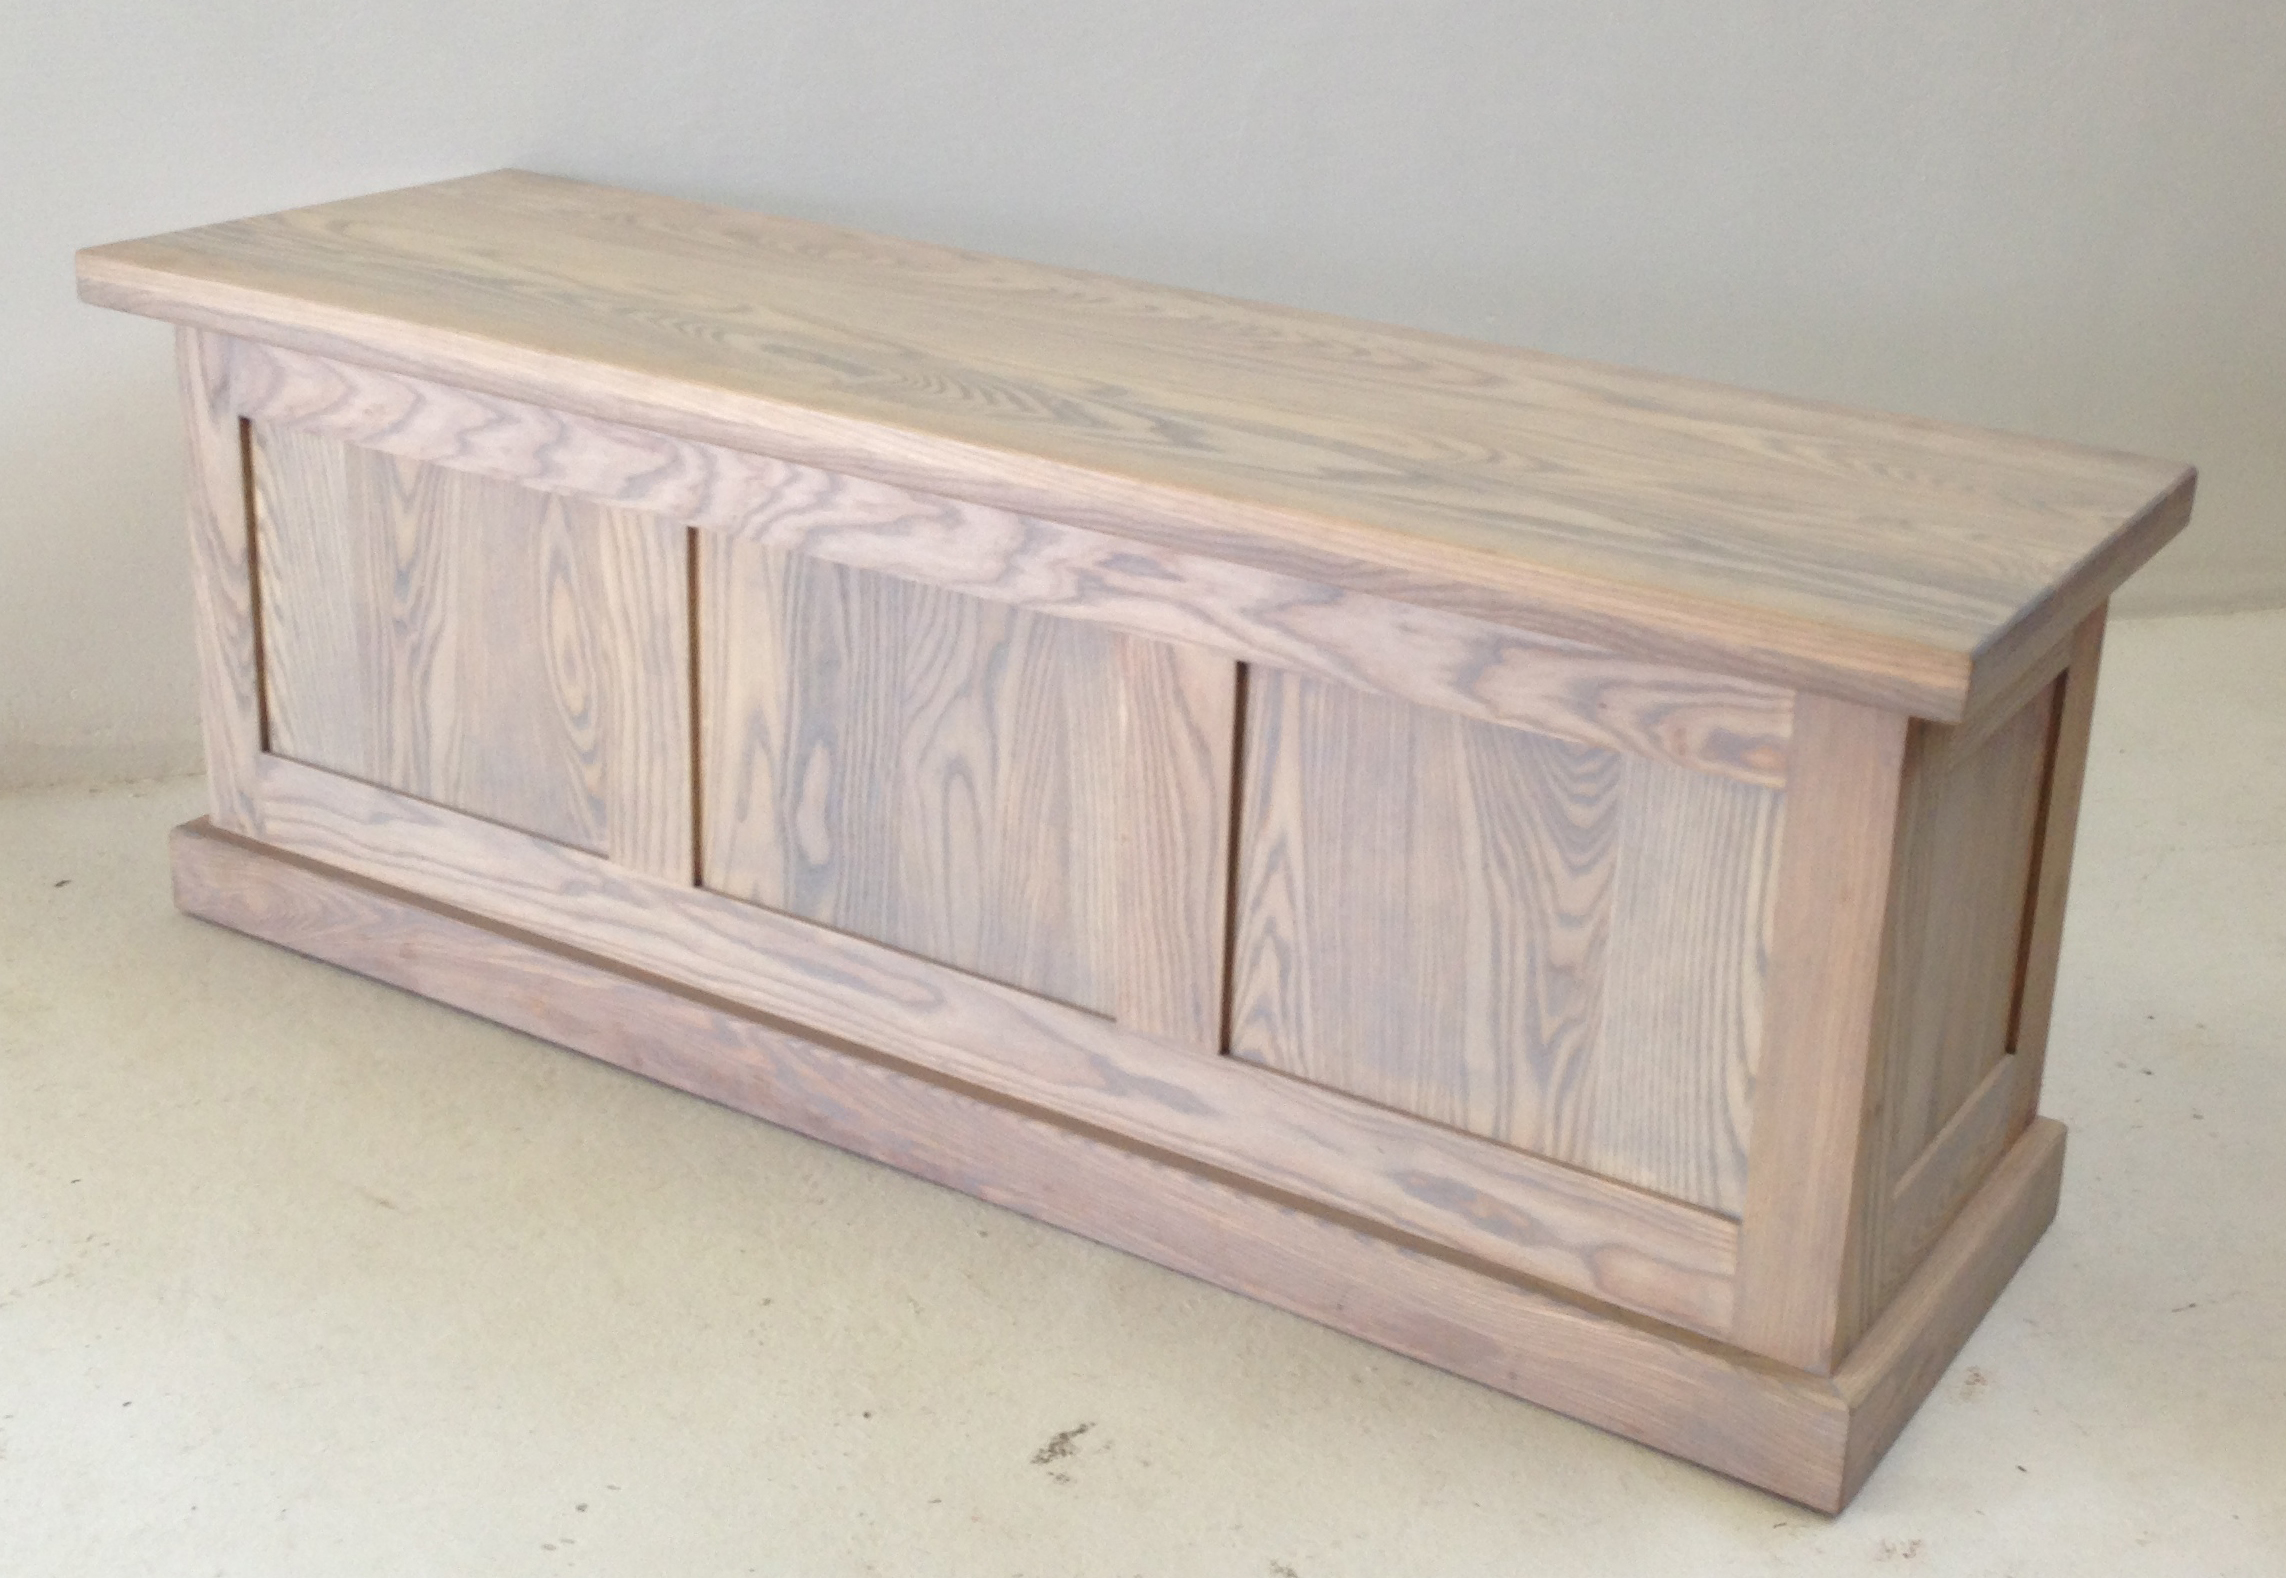 What Are The Benefits Of Choosing A Timber Blanket Box?